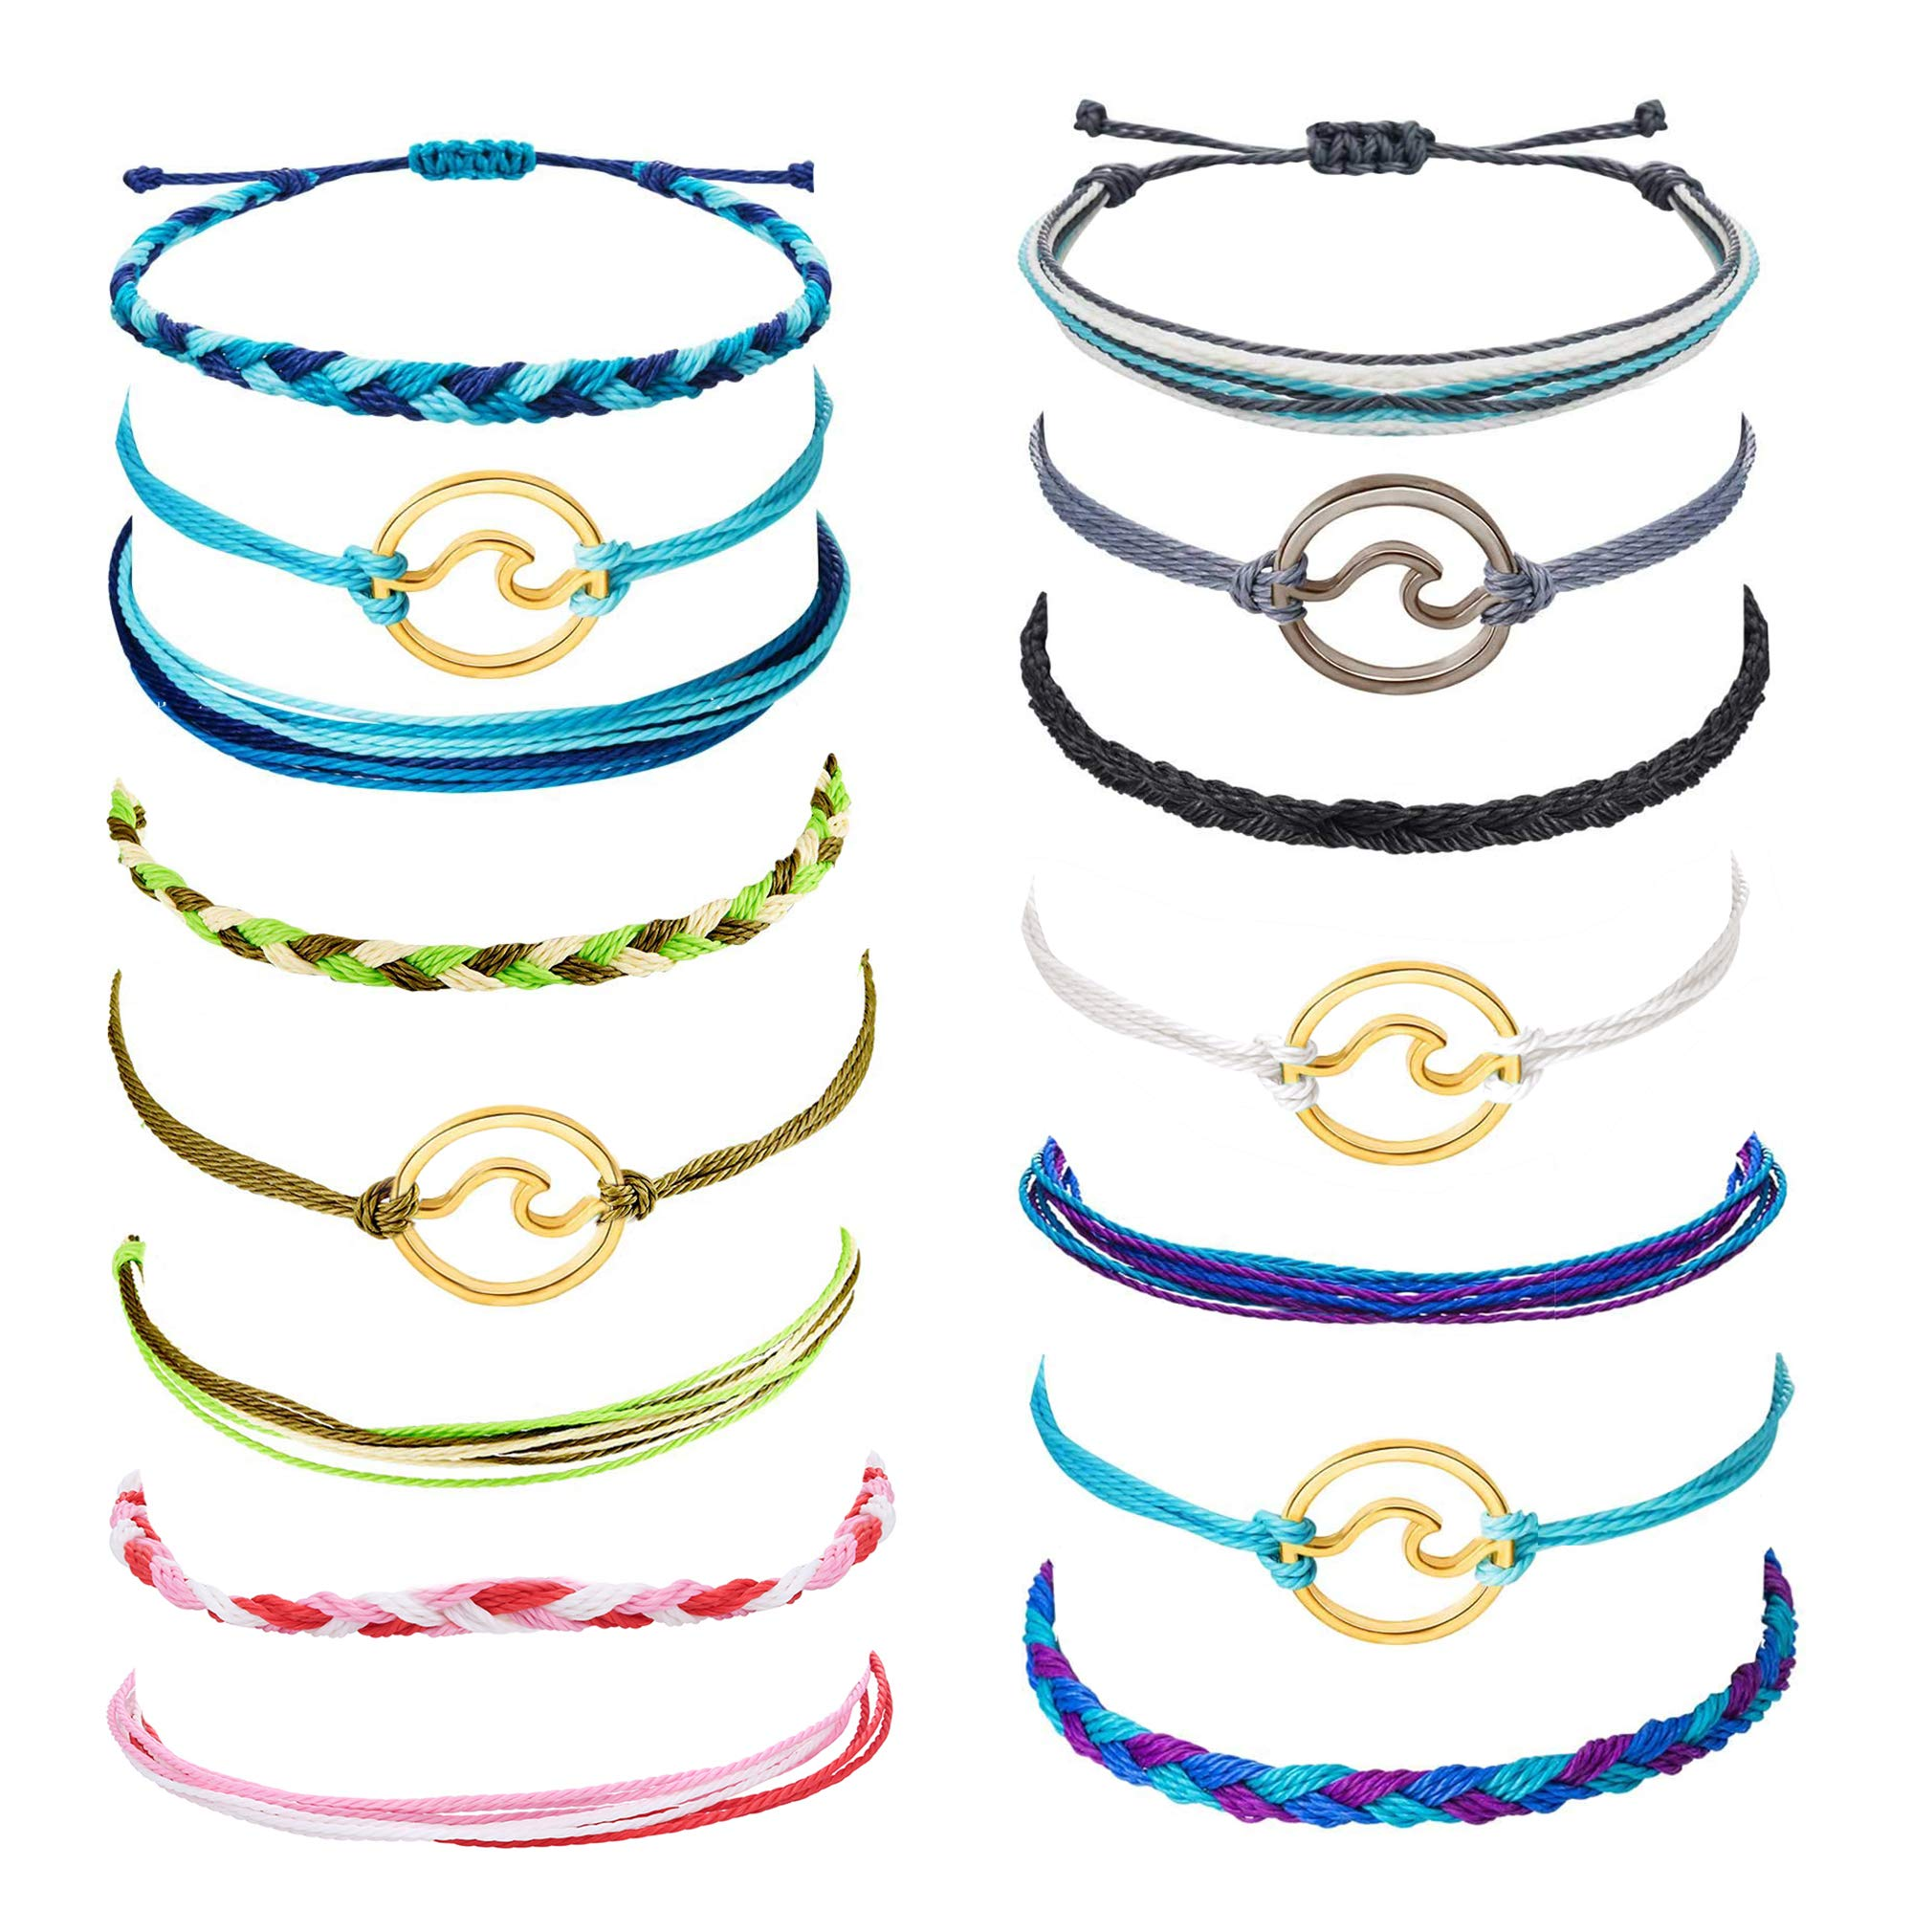 Jstyle 12-15Pcs Wave Strand Bracelet Set for Women Girls Colorful Handmade Friendship Braided Bracelet Wrap Adjustable Birthday Gifts by Jstyle